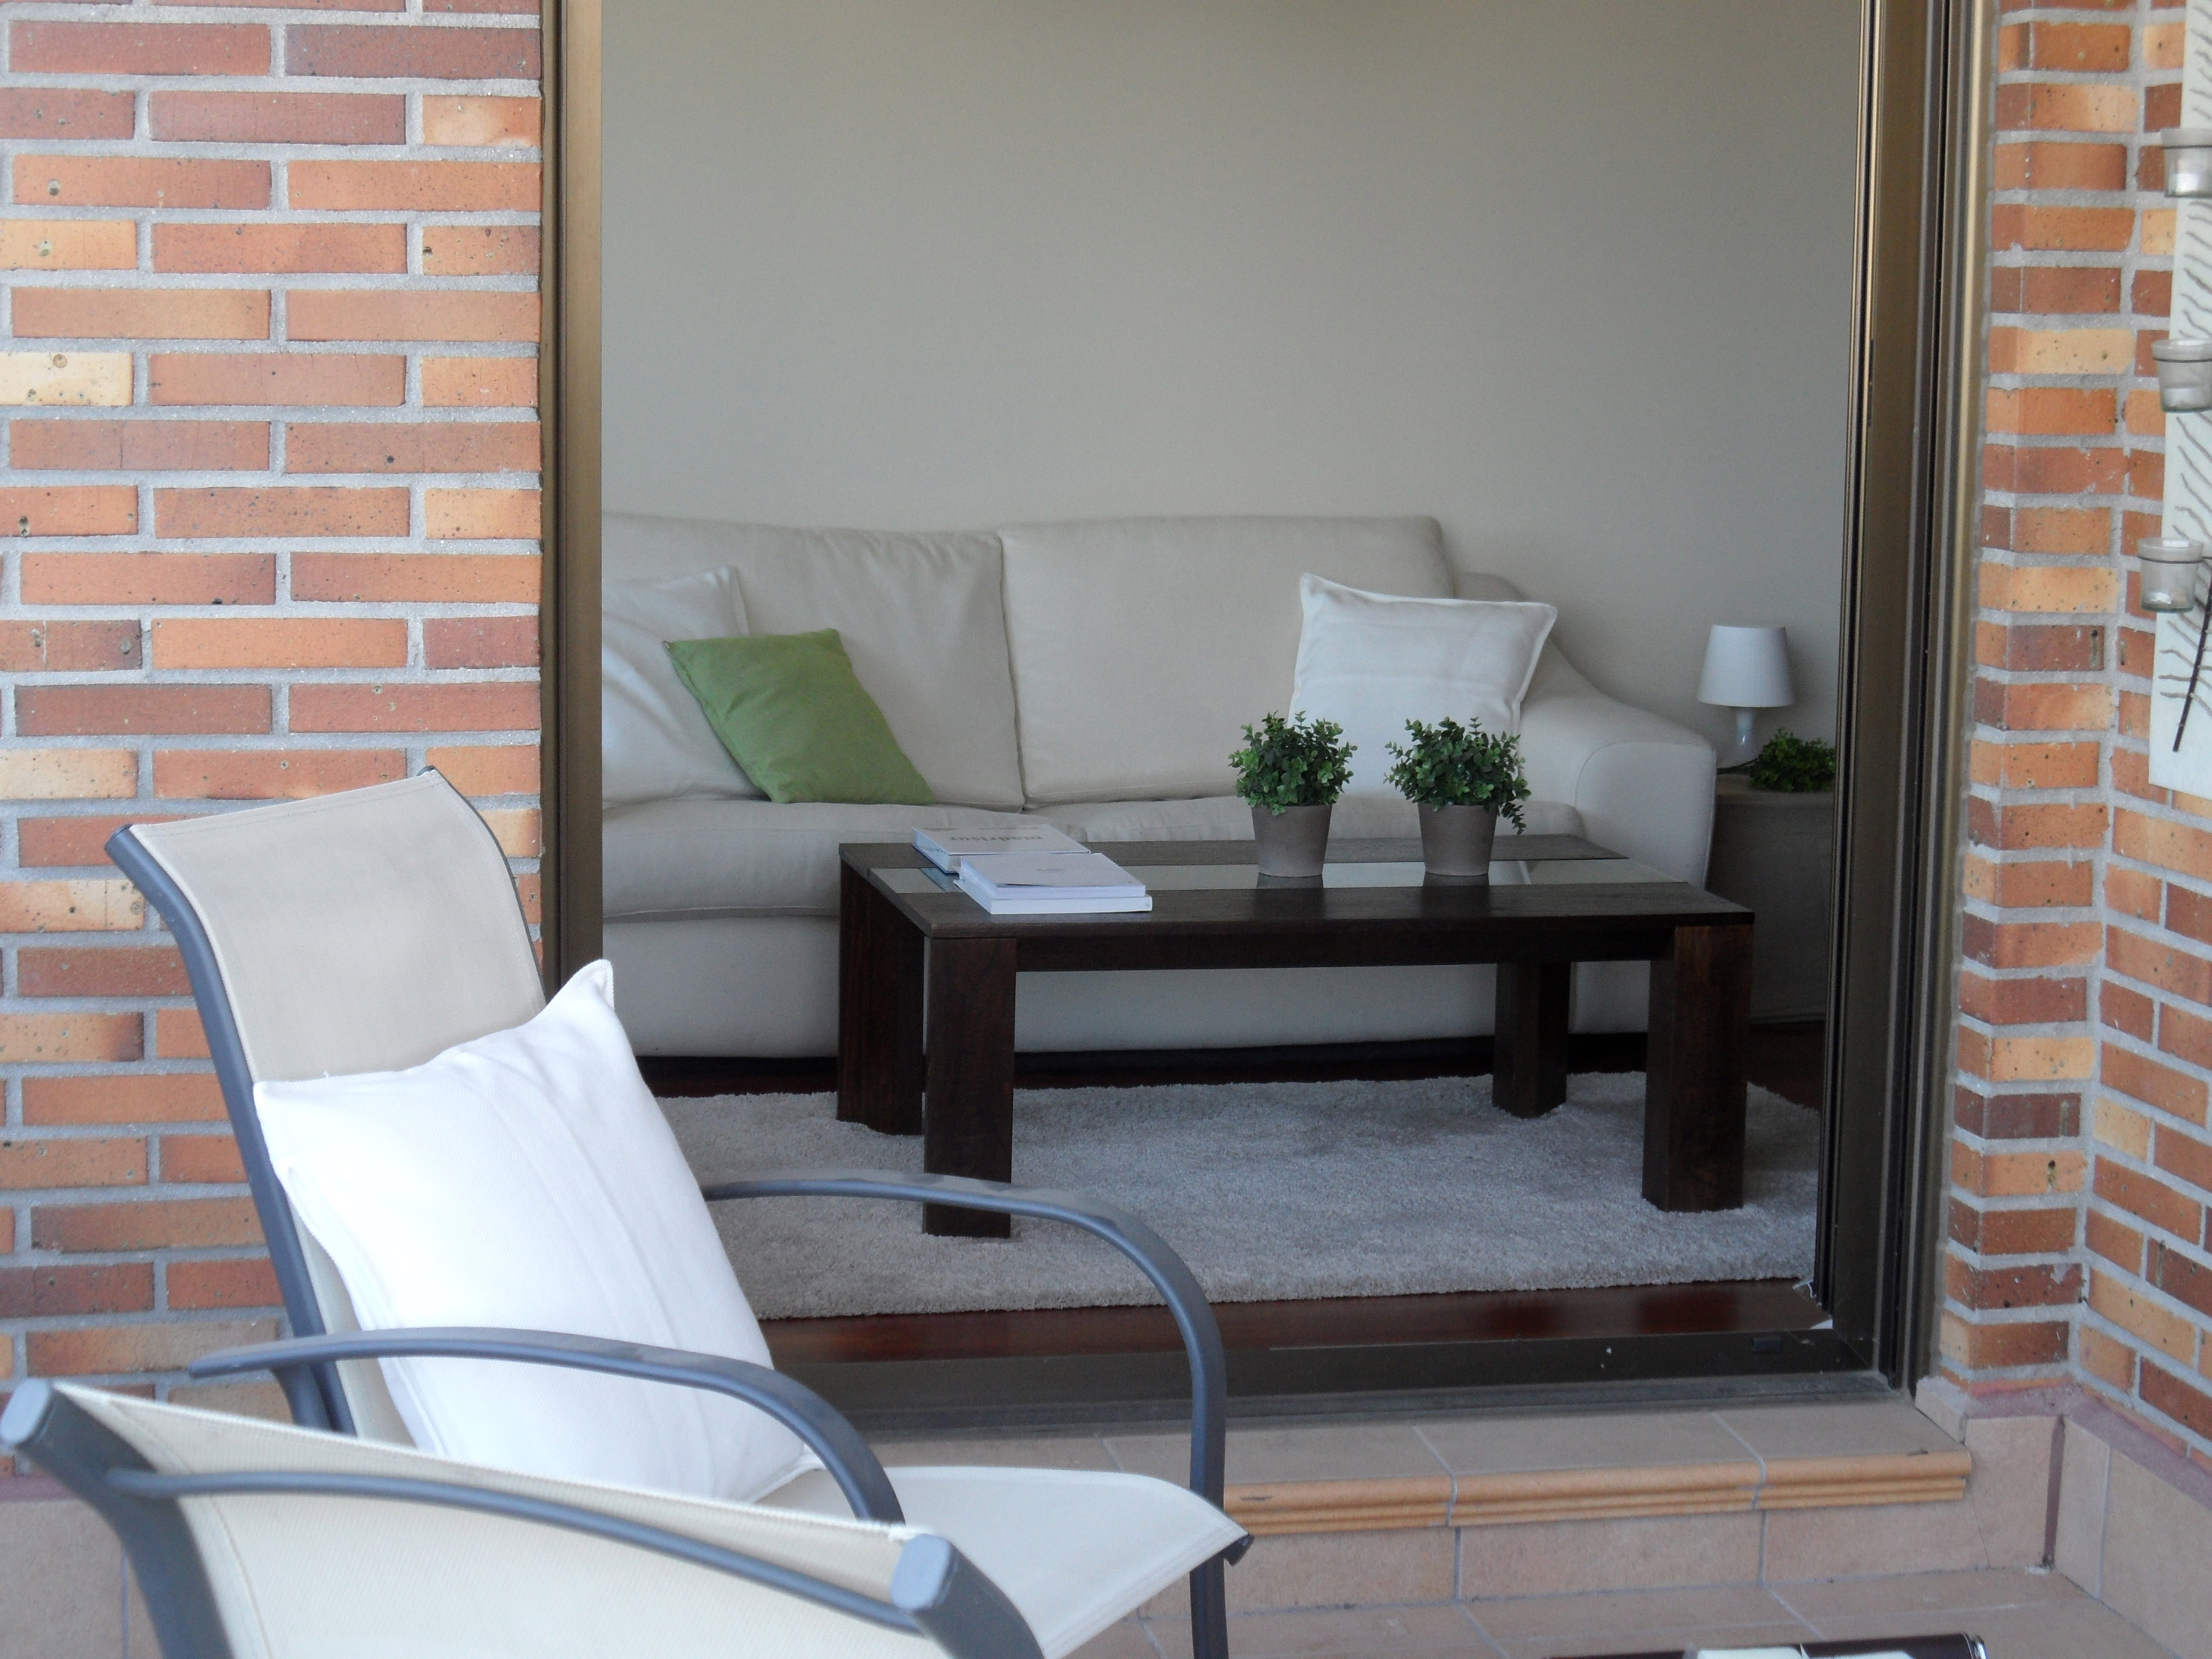 el home staging es una herramienta de marketing inmobiliario